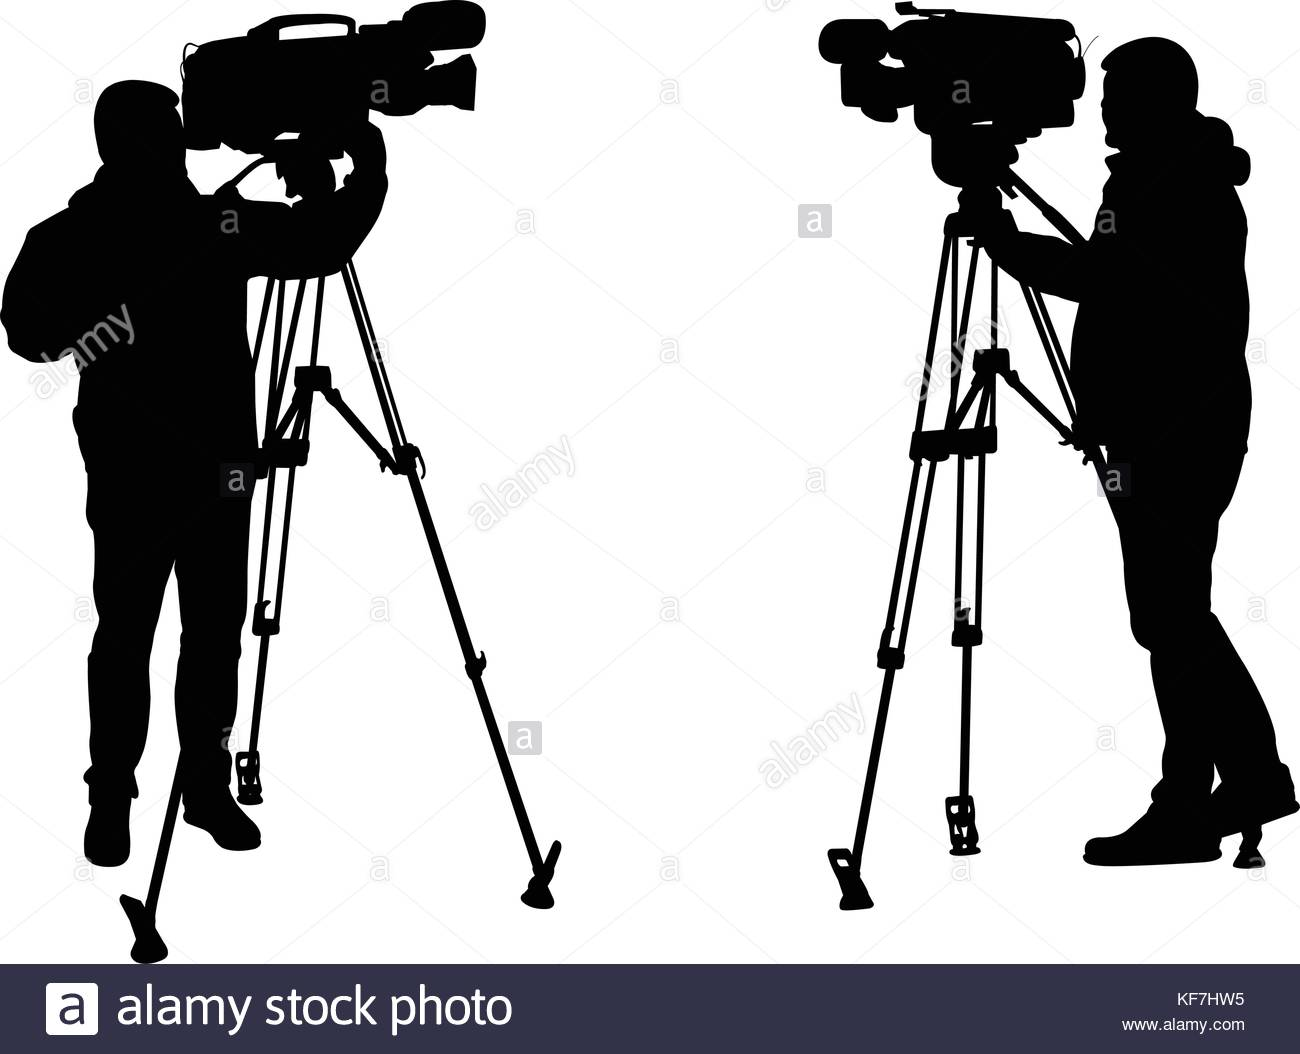 1300x1054 Cameraman Black And White Stock Photos Amp Images